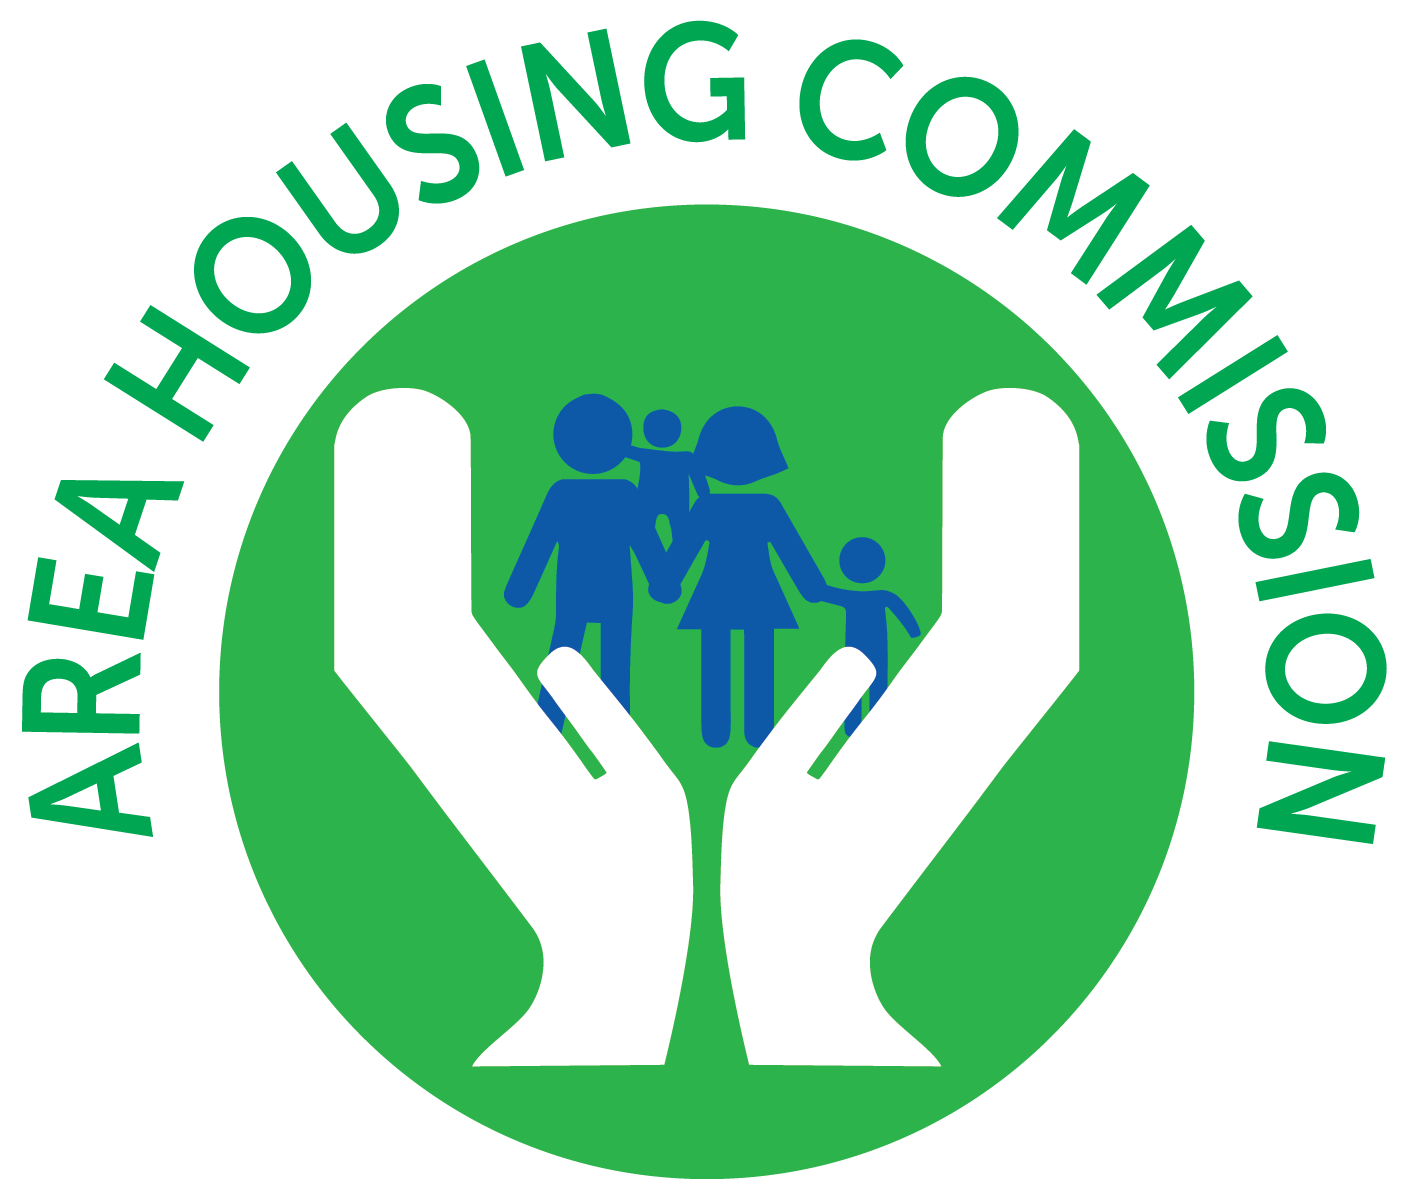 Area Housing Commission